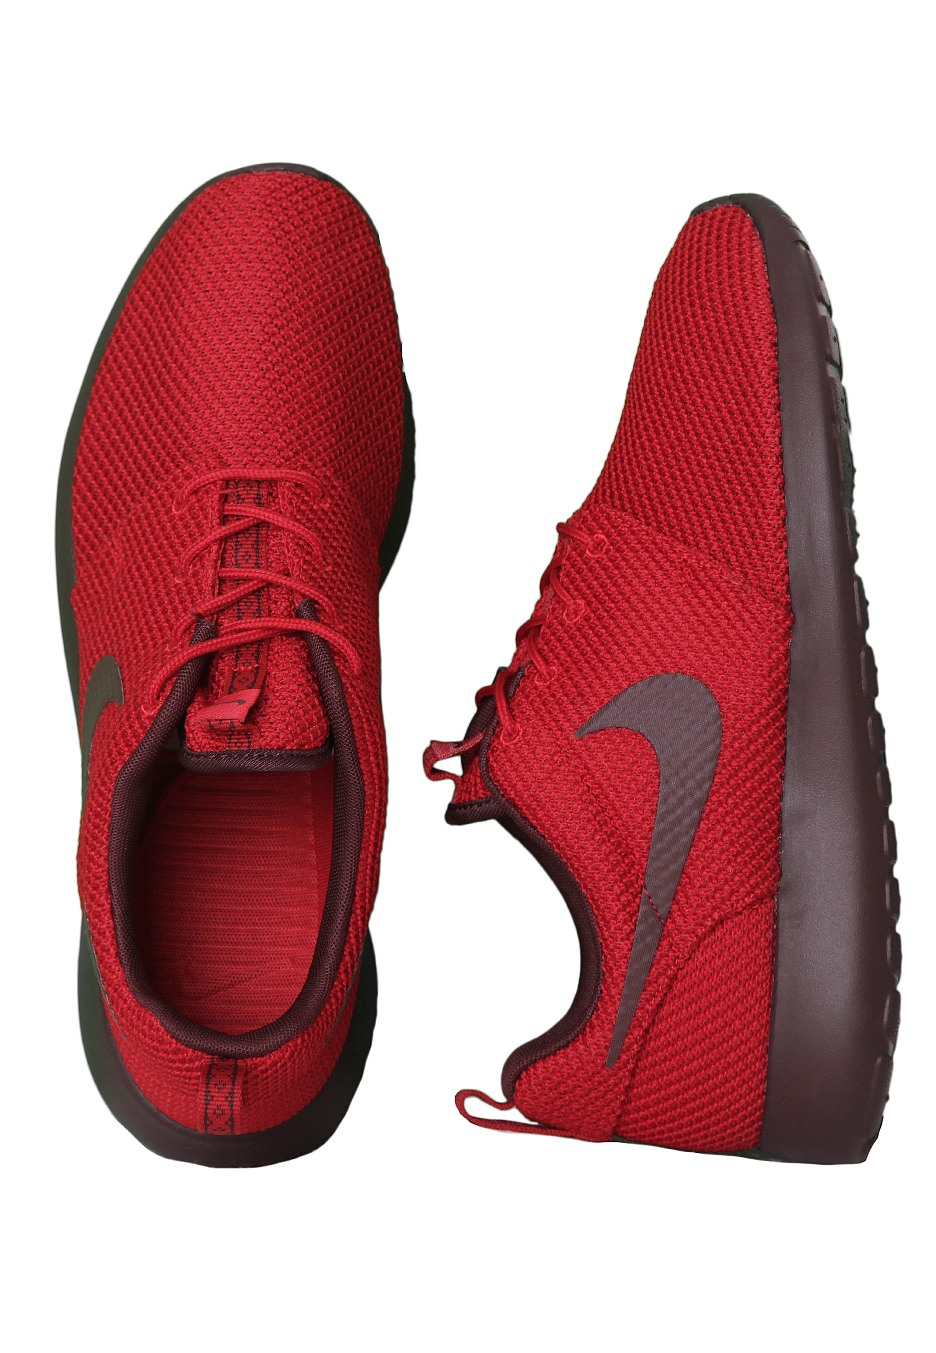 burgundy roshe run